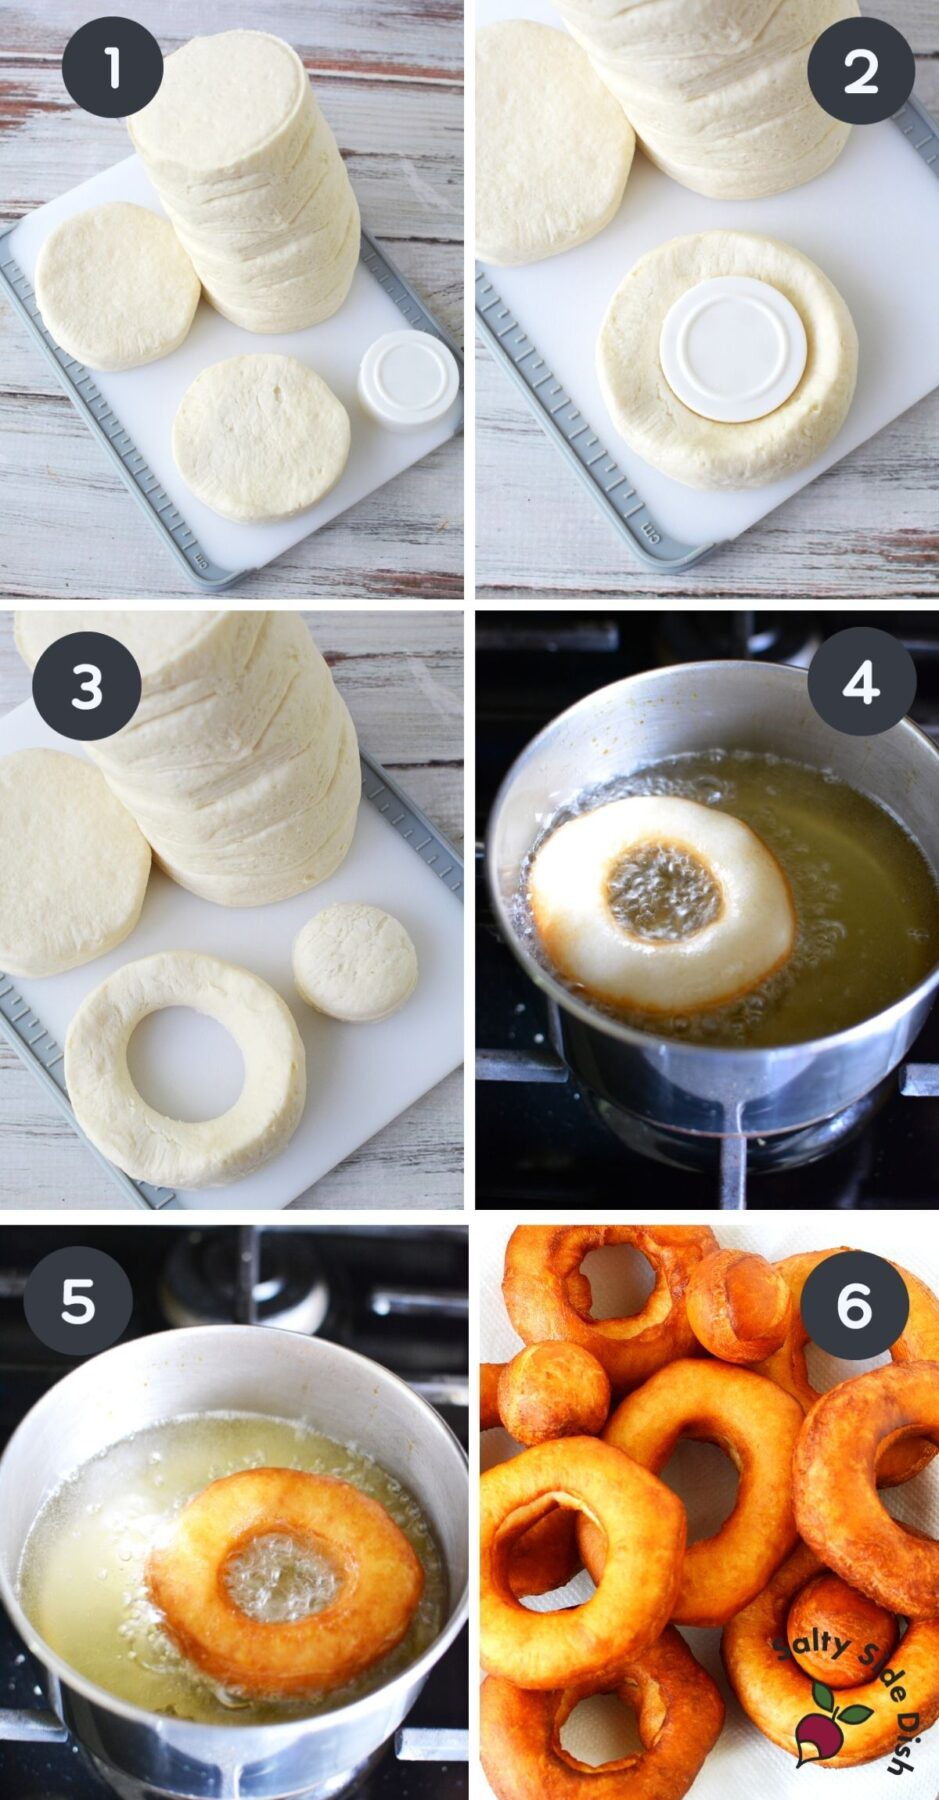 6 image collage of how to make and fry biscuit donuts